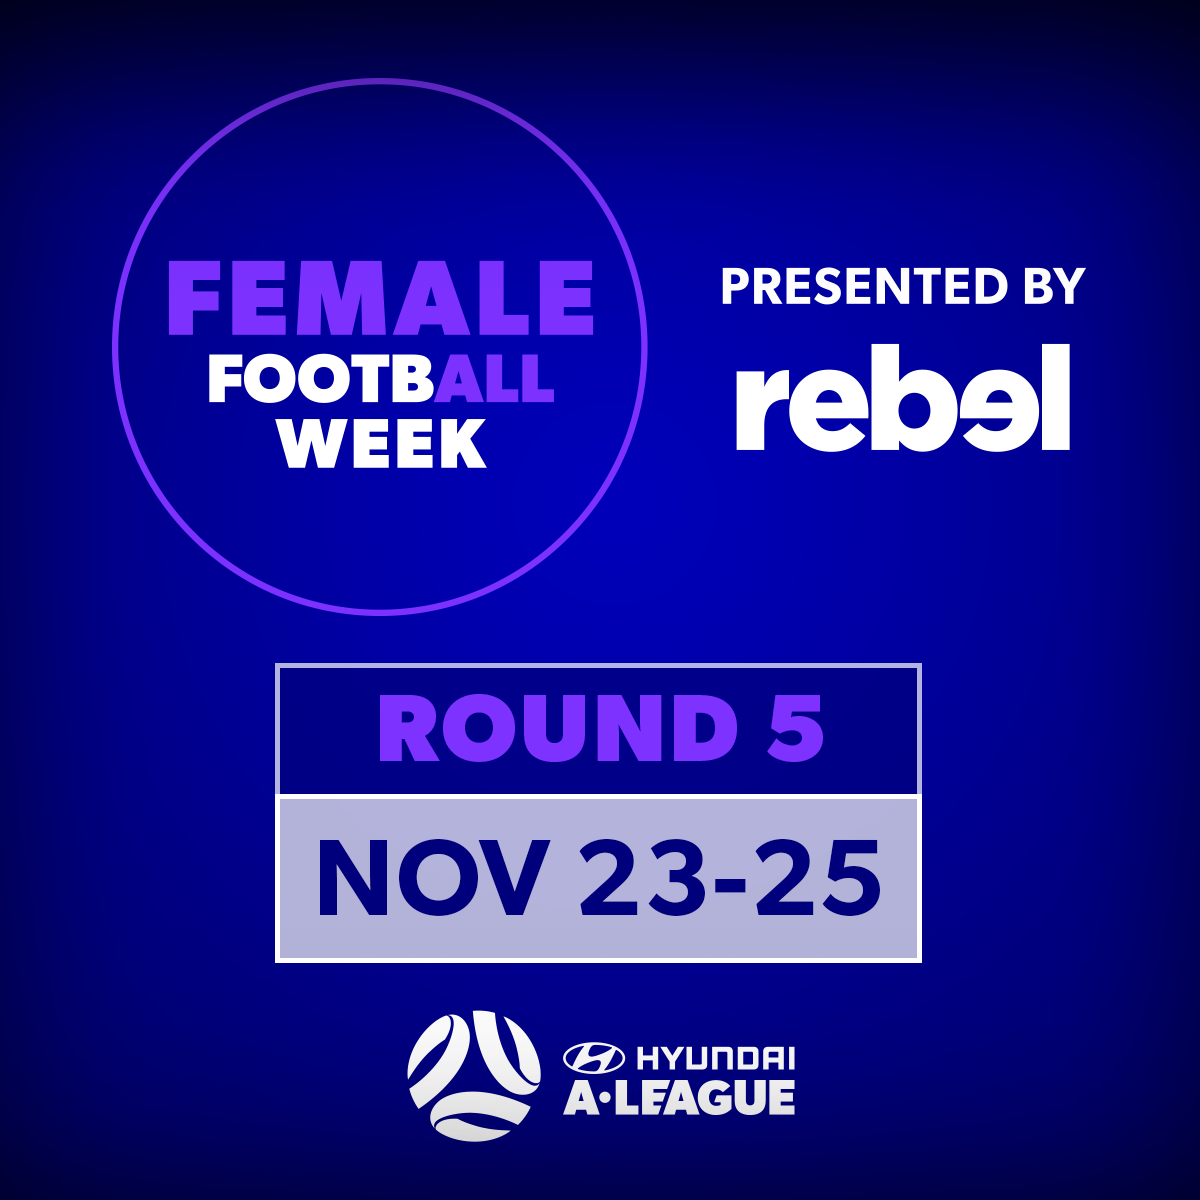 Female Football Week